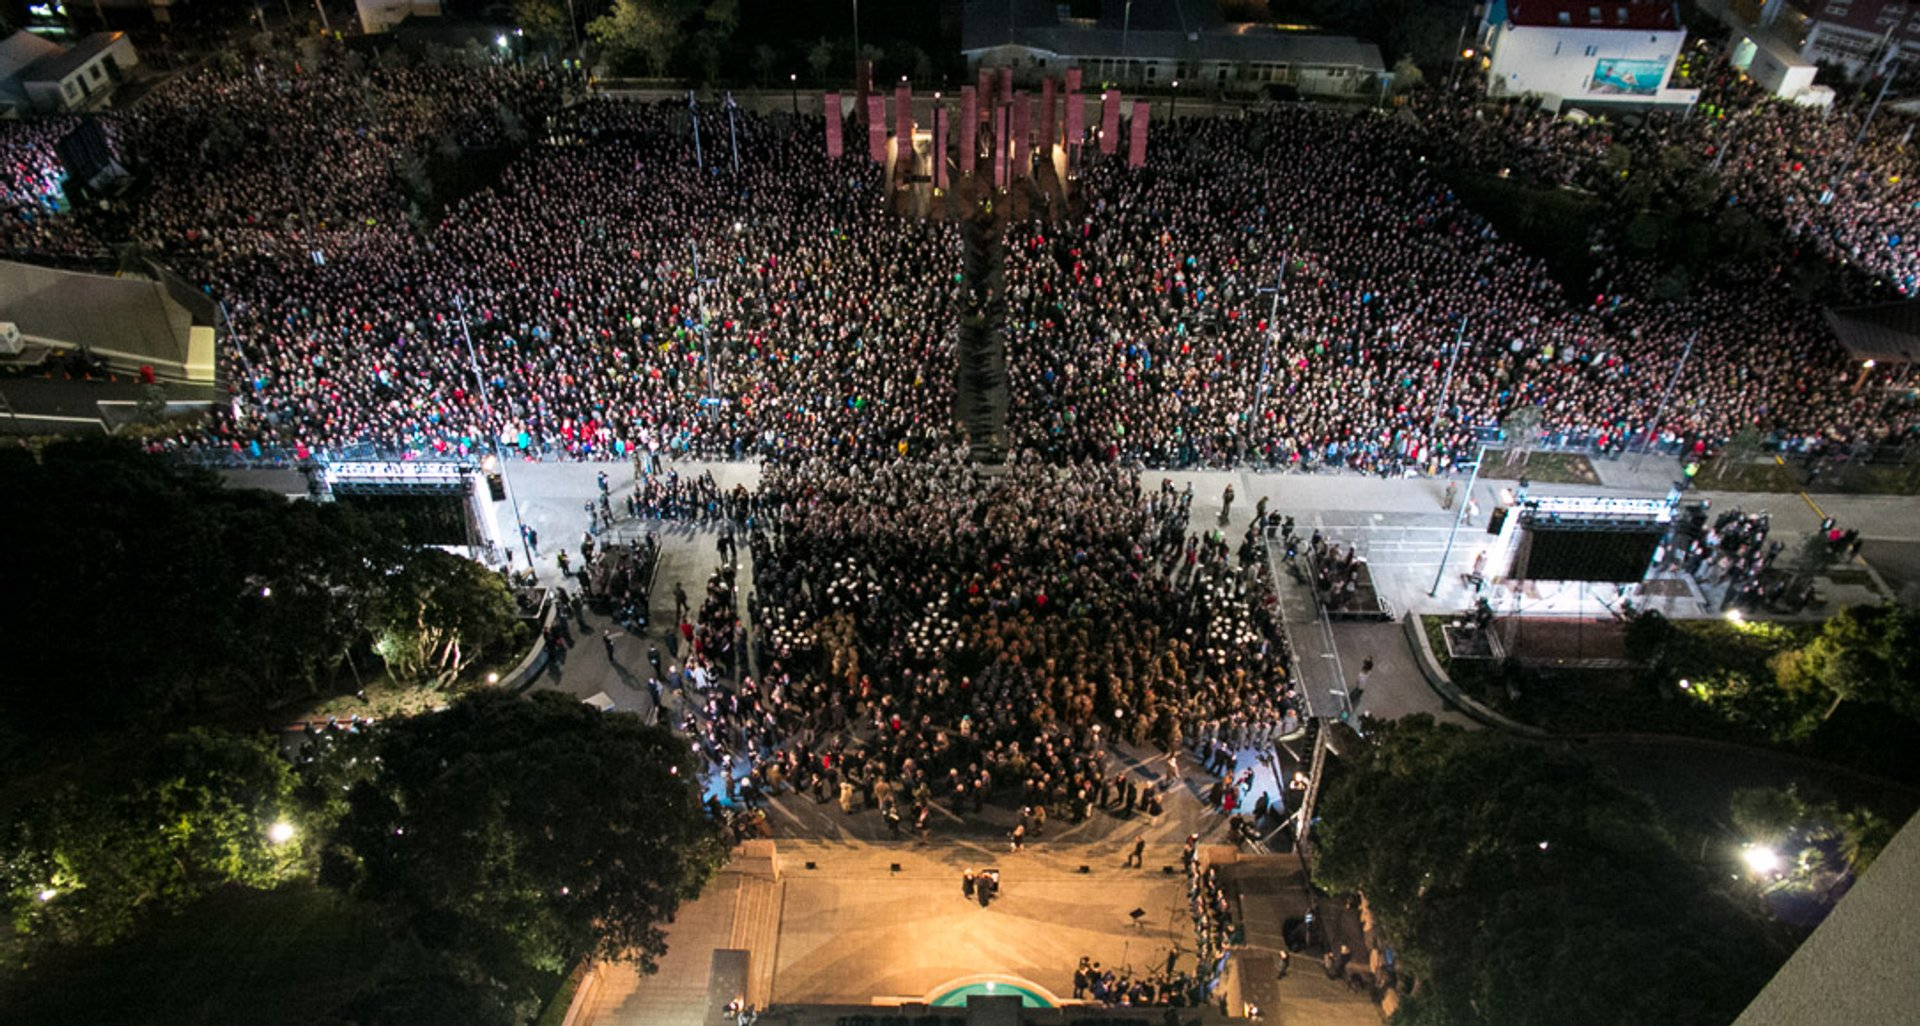 View of the 50,000 crowd that attended the Dawn Service 2019